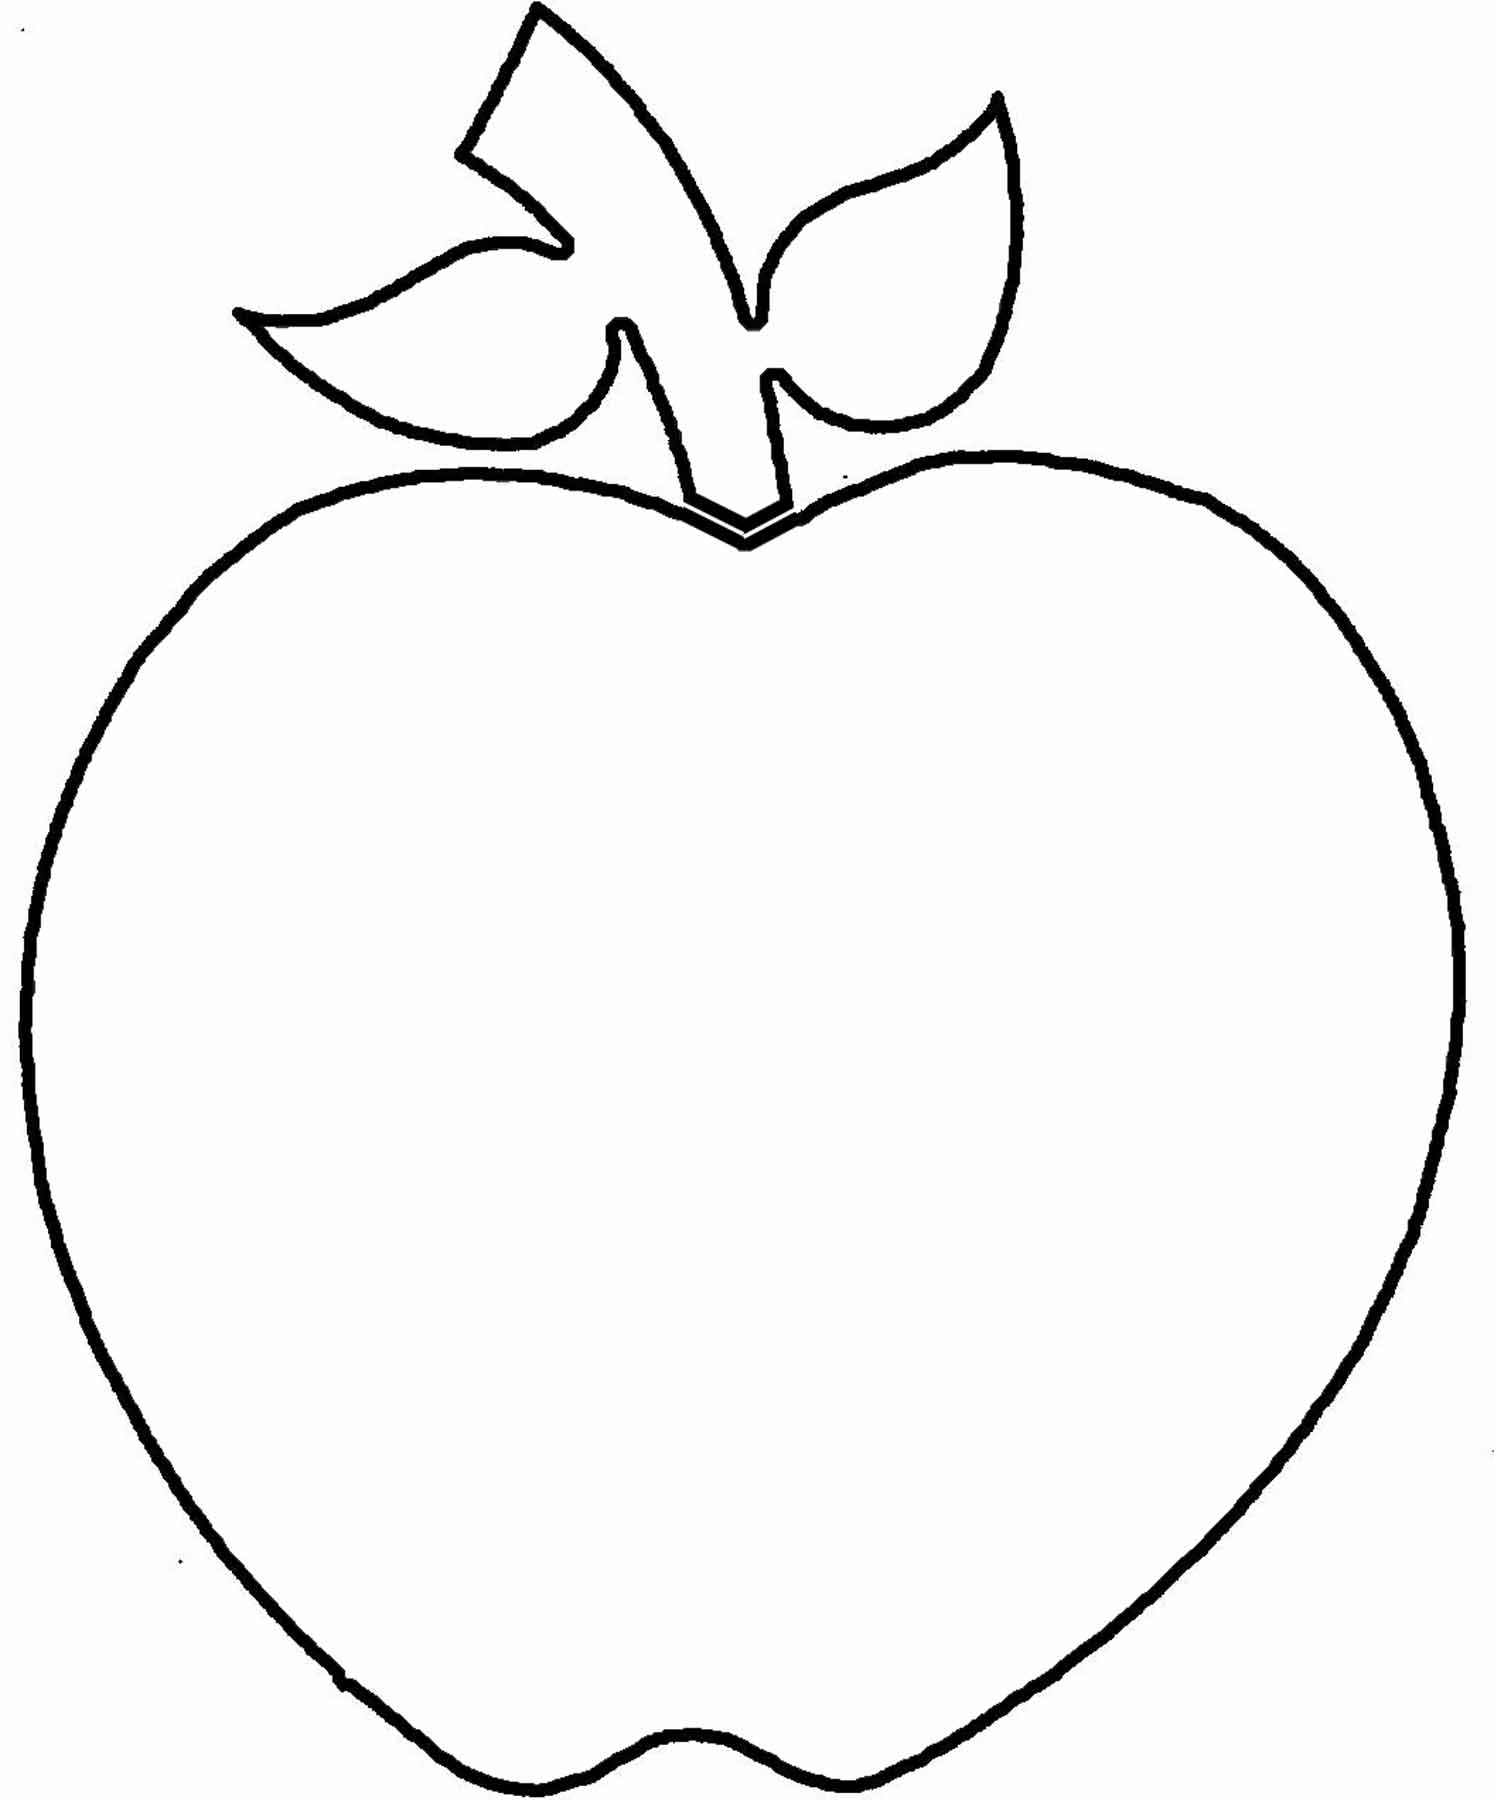 1494x1800 Apple Outline Clip Art